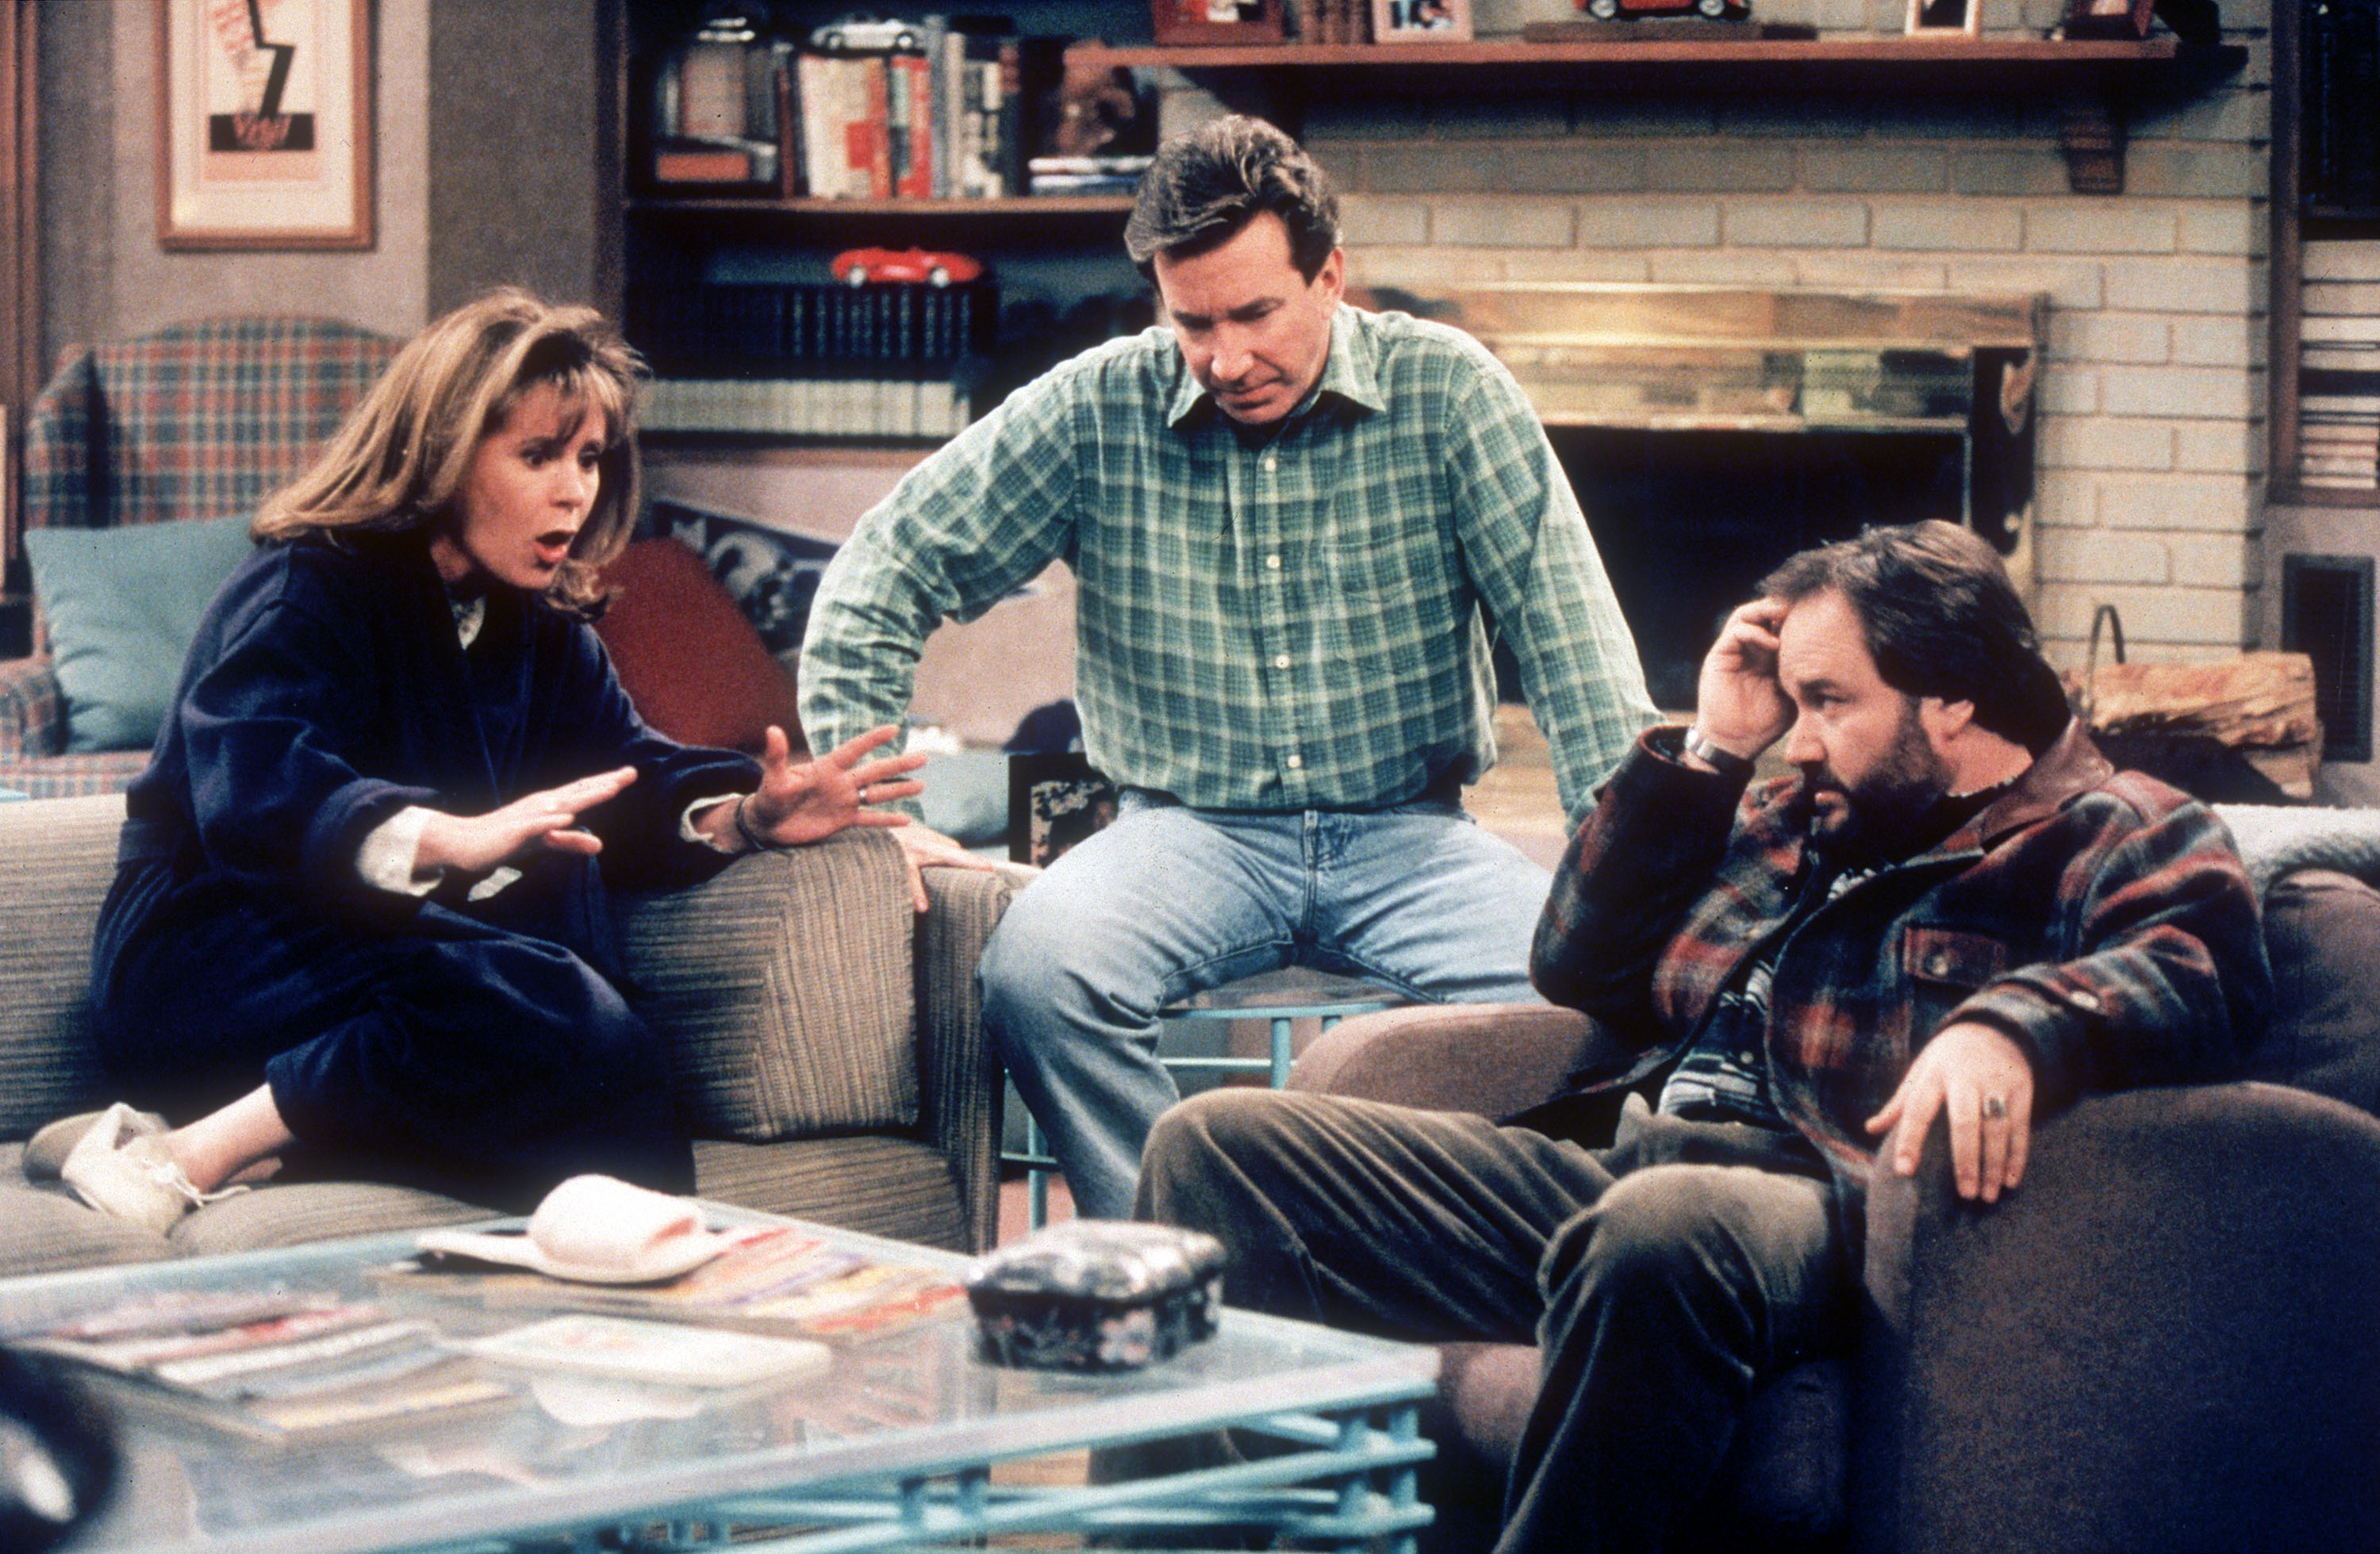 Home Improvement - Home Improvement (TV show) Photo ...